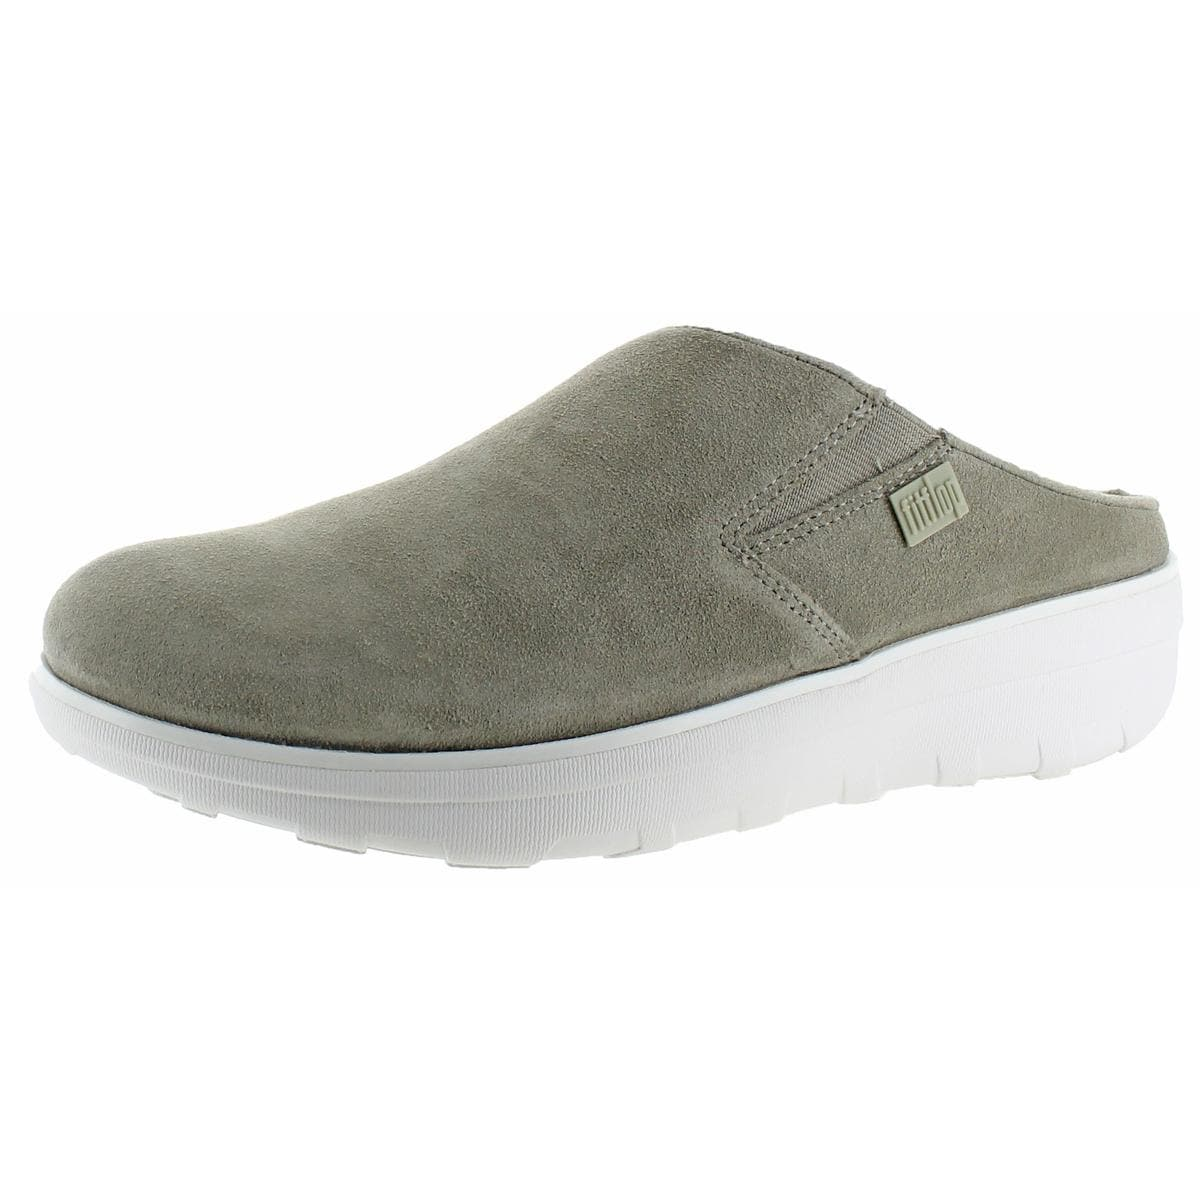 4d05f7cb9 Shop Fitflop Womens Loaff Clogs Padded Insole Slip On - On Sale ...